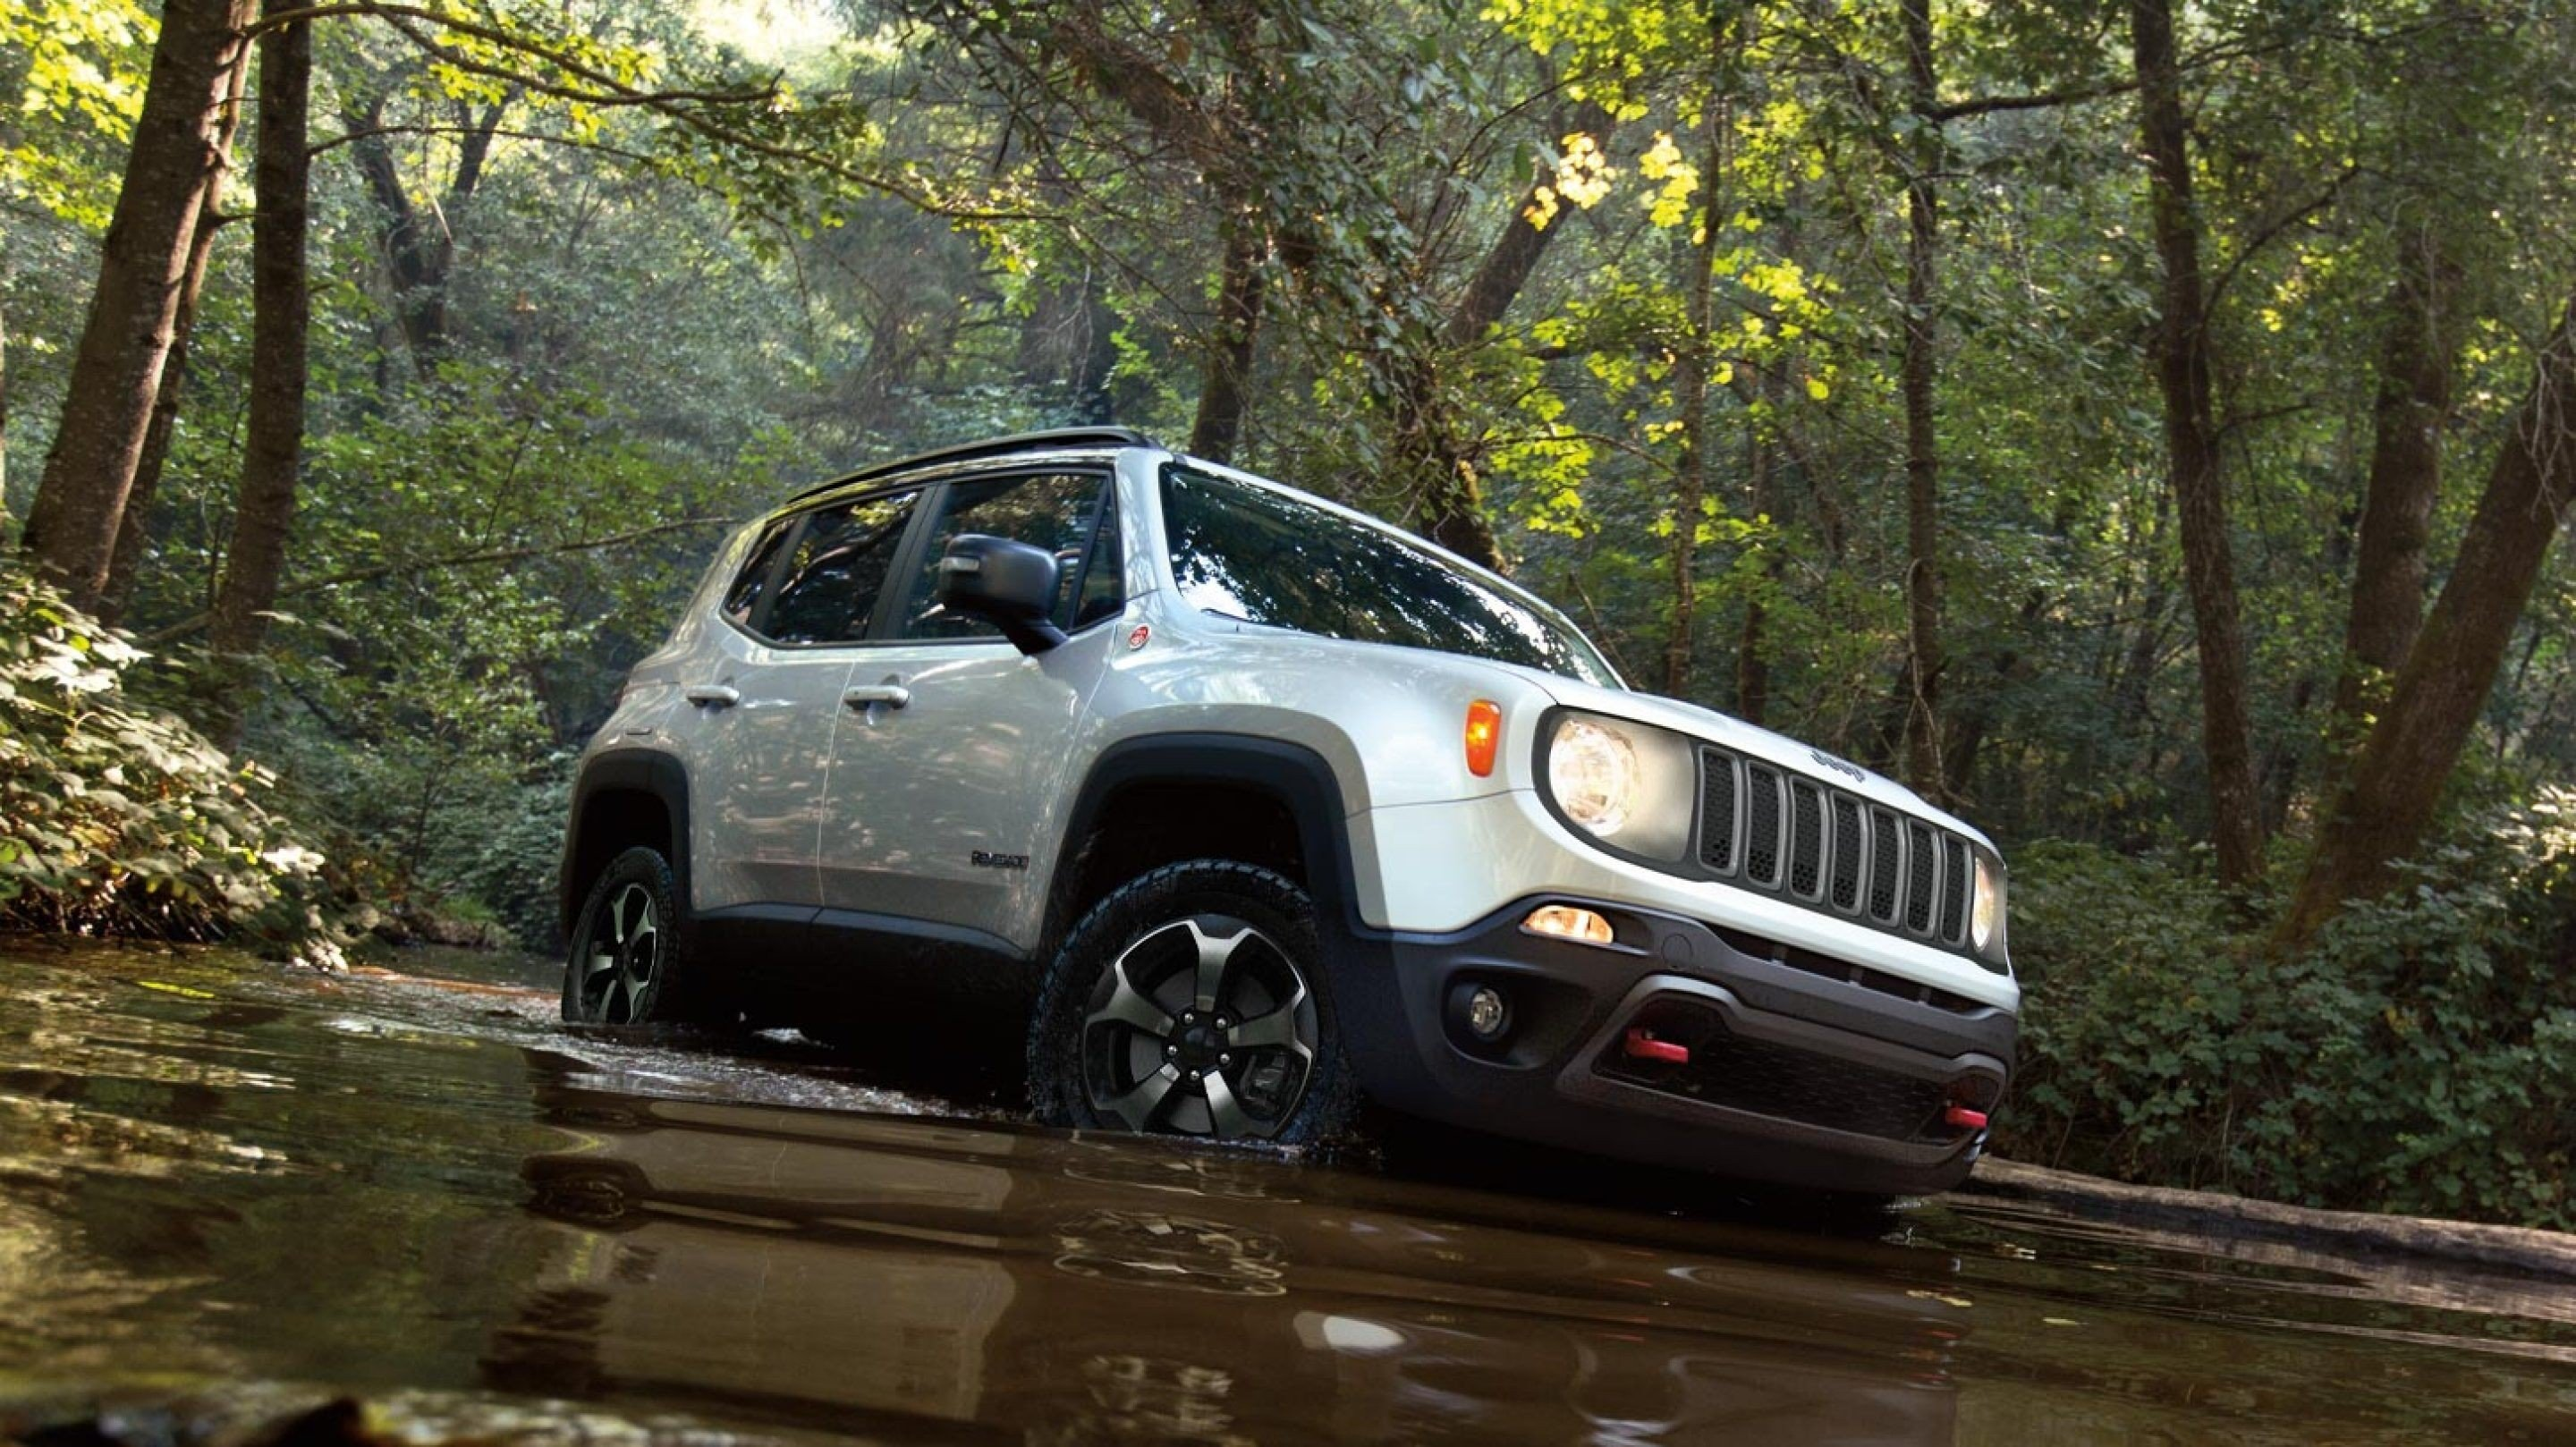 Get down and dirty with the Renegade.